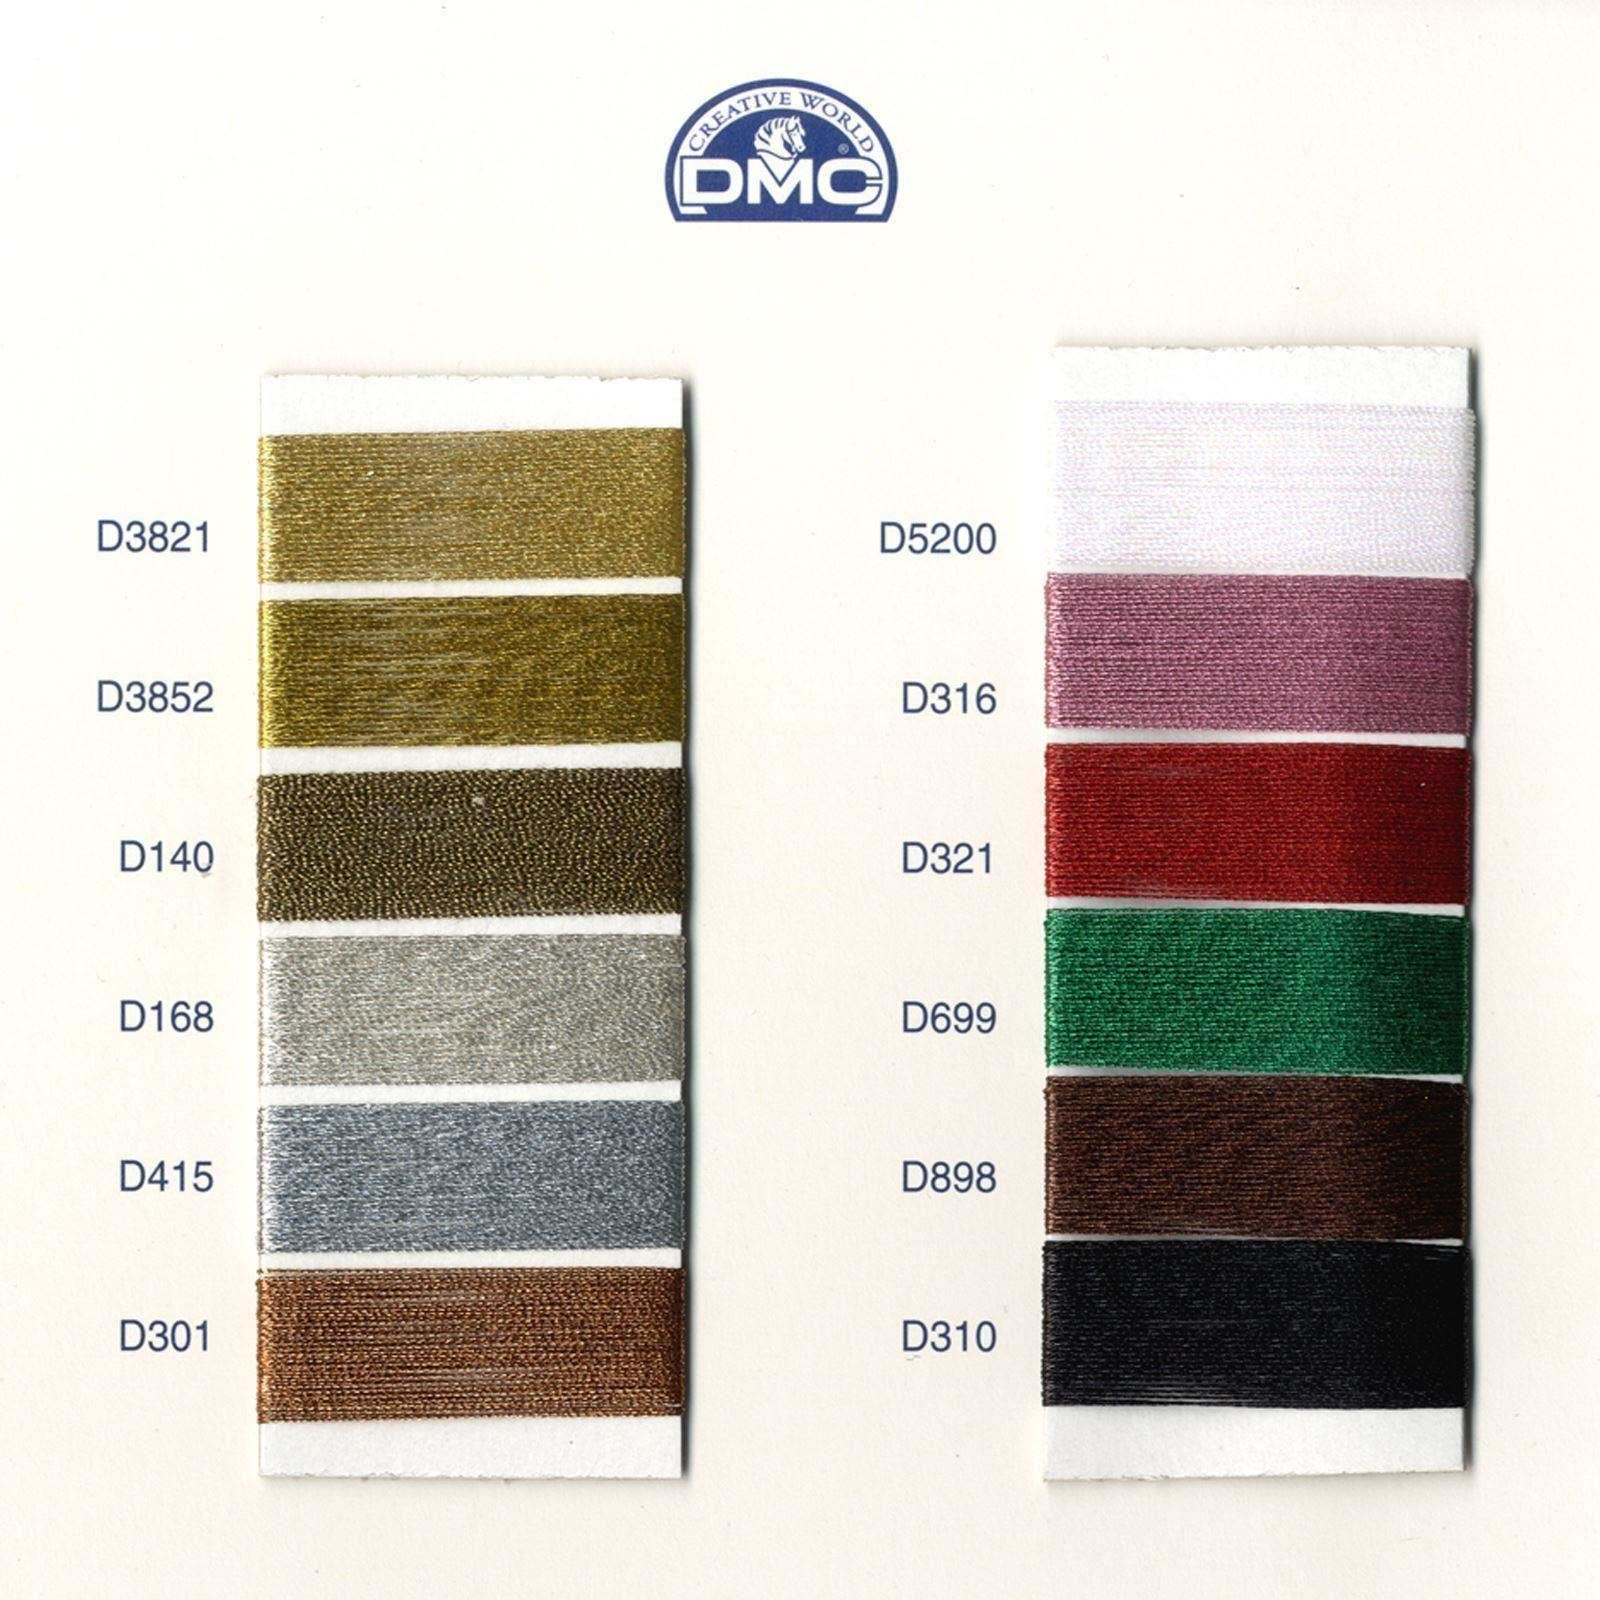 DMC-Diamant-Metallic-Embroidery-Thread-35m-Spool-Cross-Stitch thumbnail 48